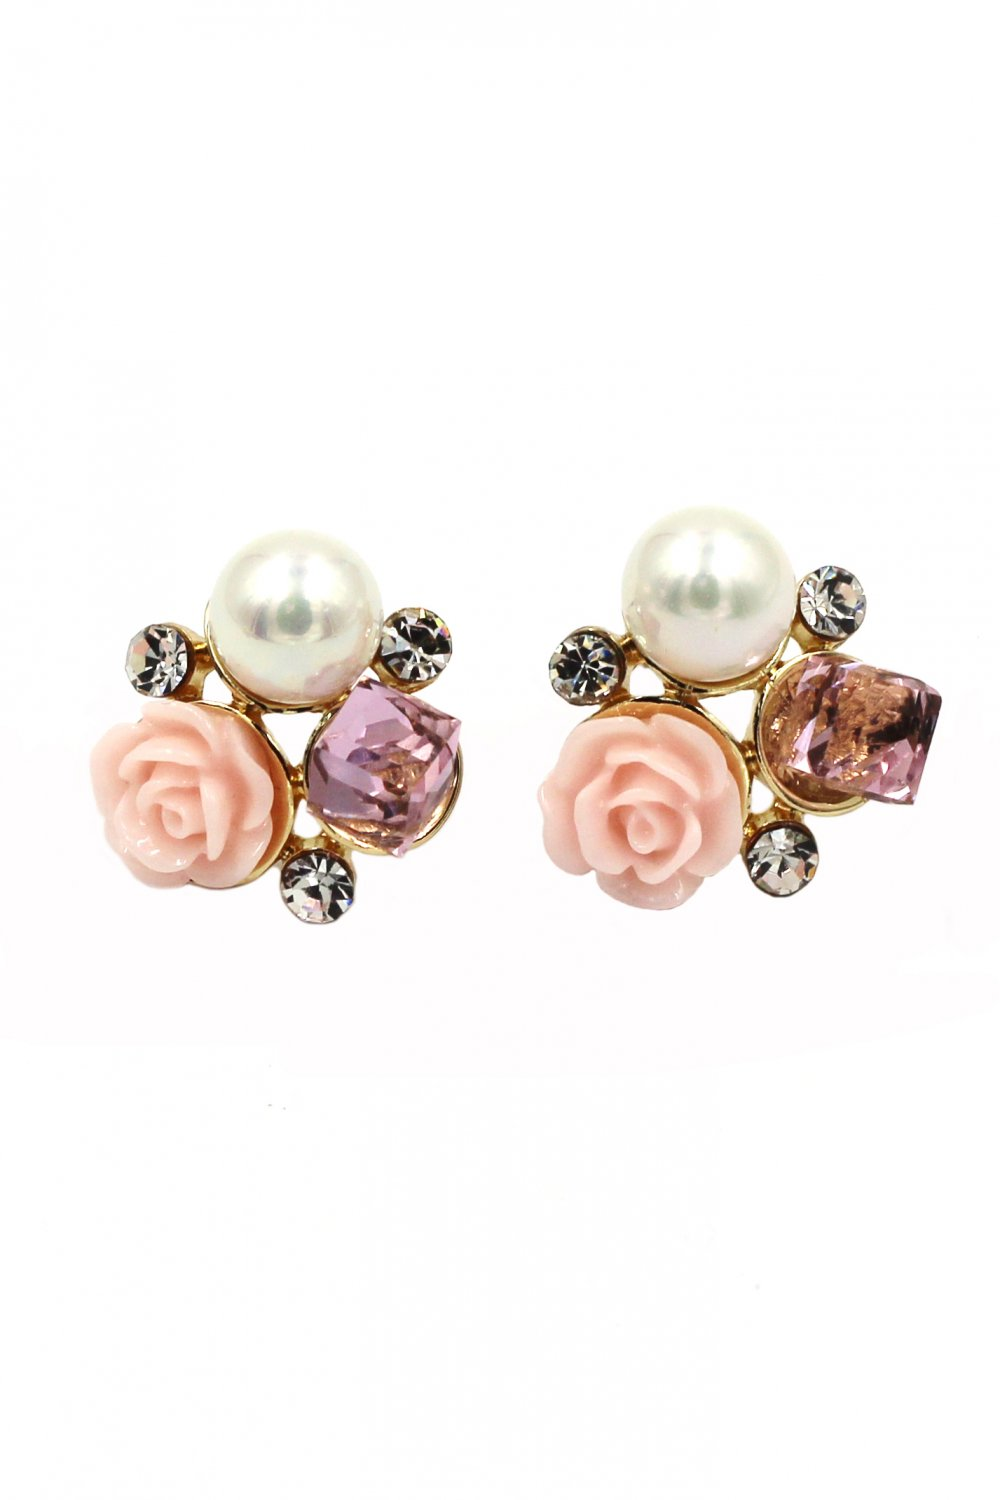 Lovable pink flower crystal pearl earrings